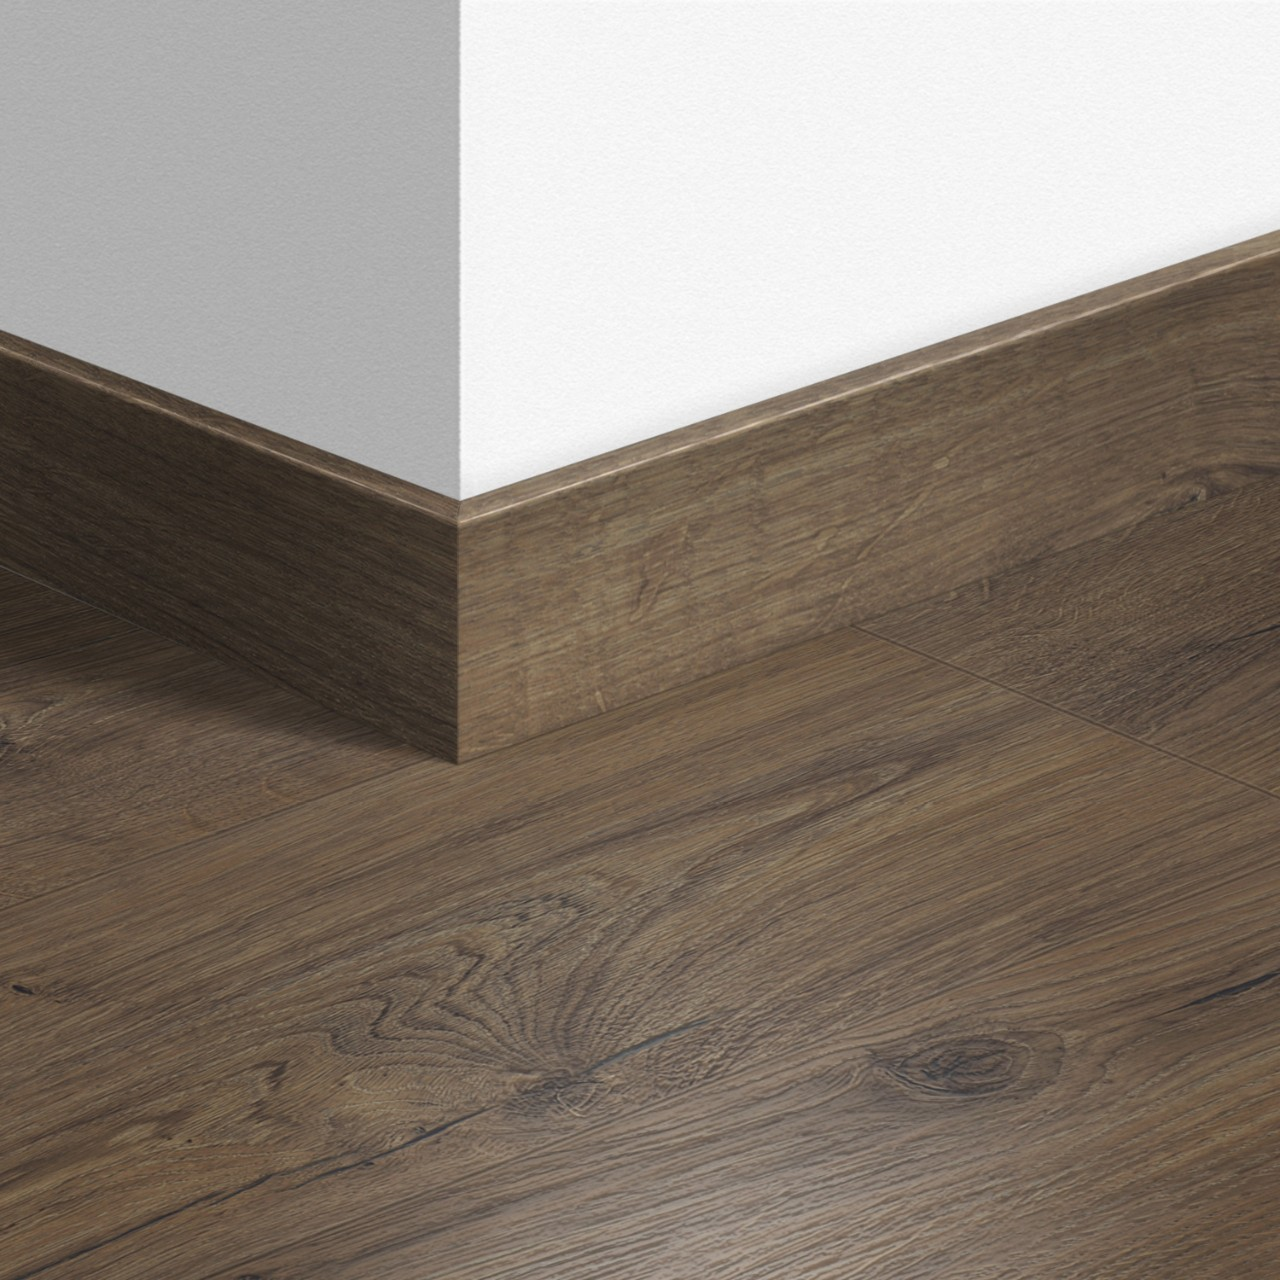 QSPSKR Laminate Accessories Classic oak brown QSPSKR01849